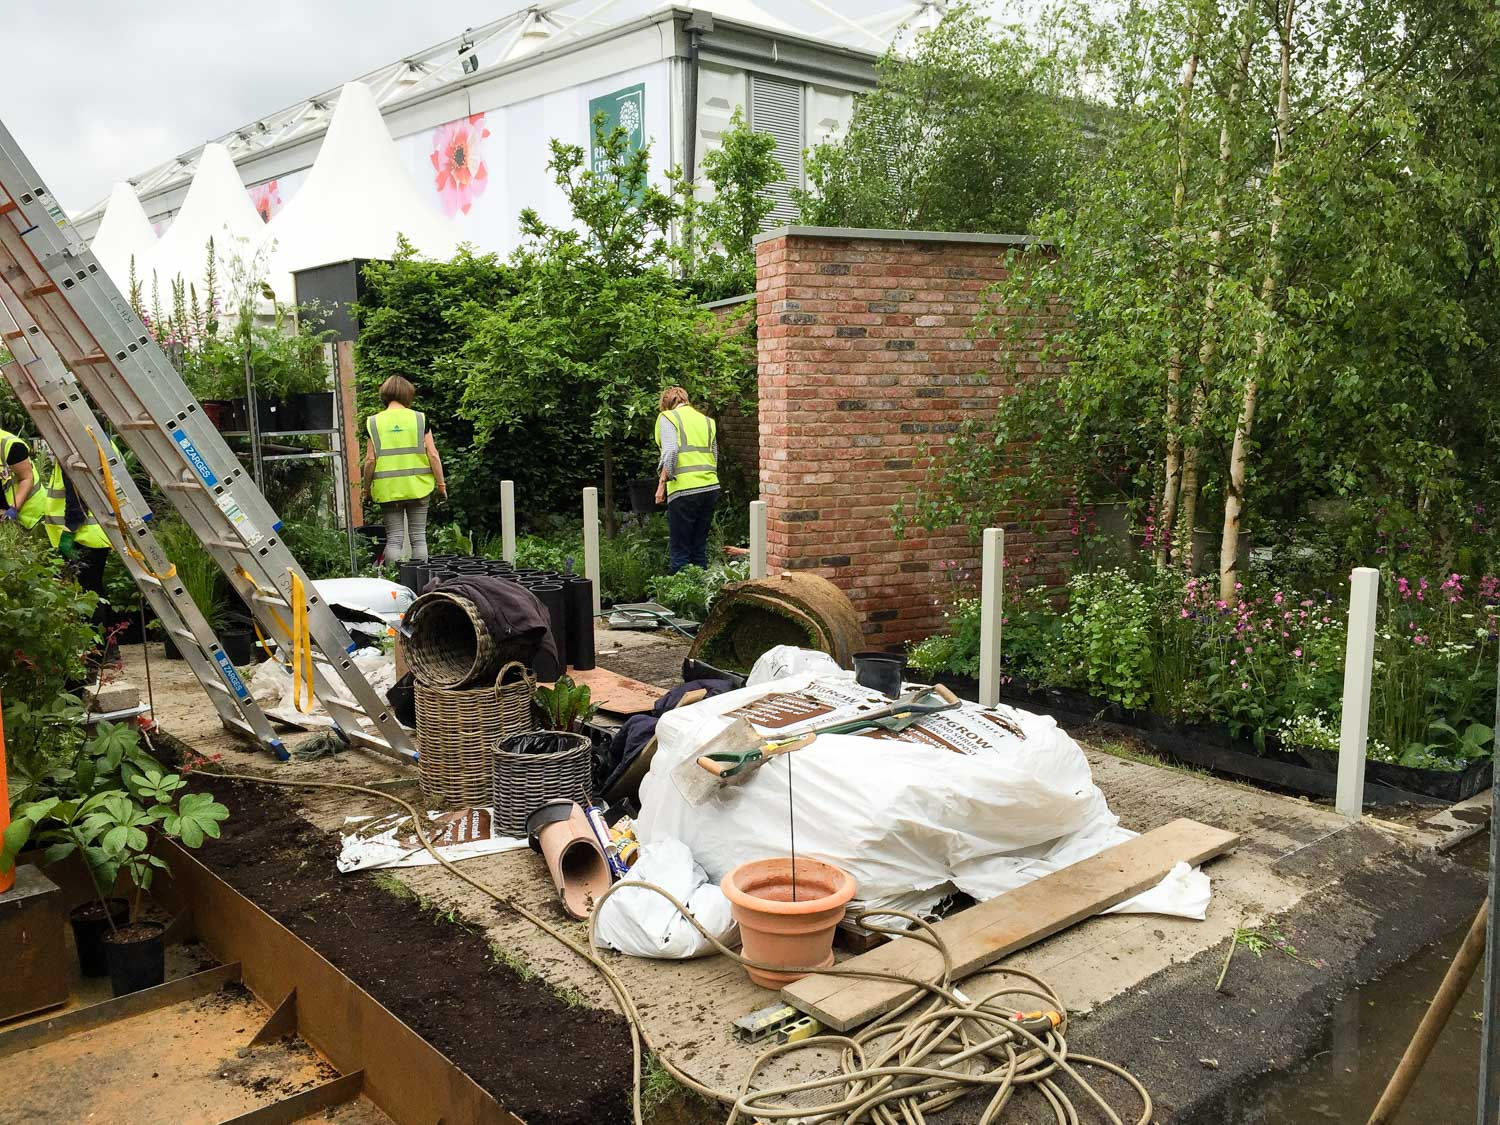 There was still a great team spirit and I even got involved with a few finishing touches to the garden.